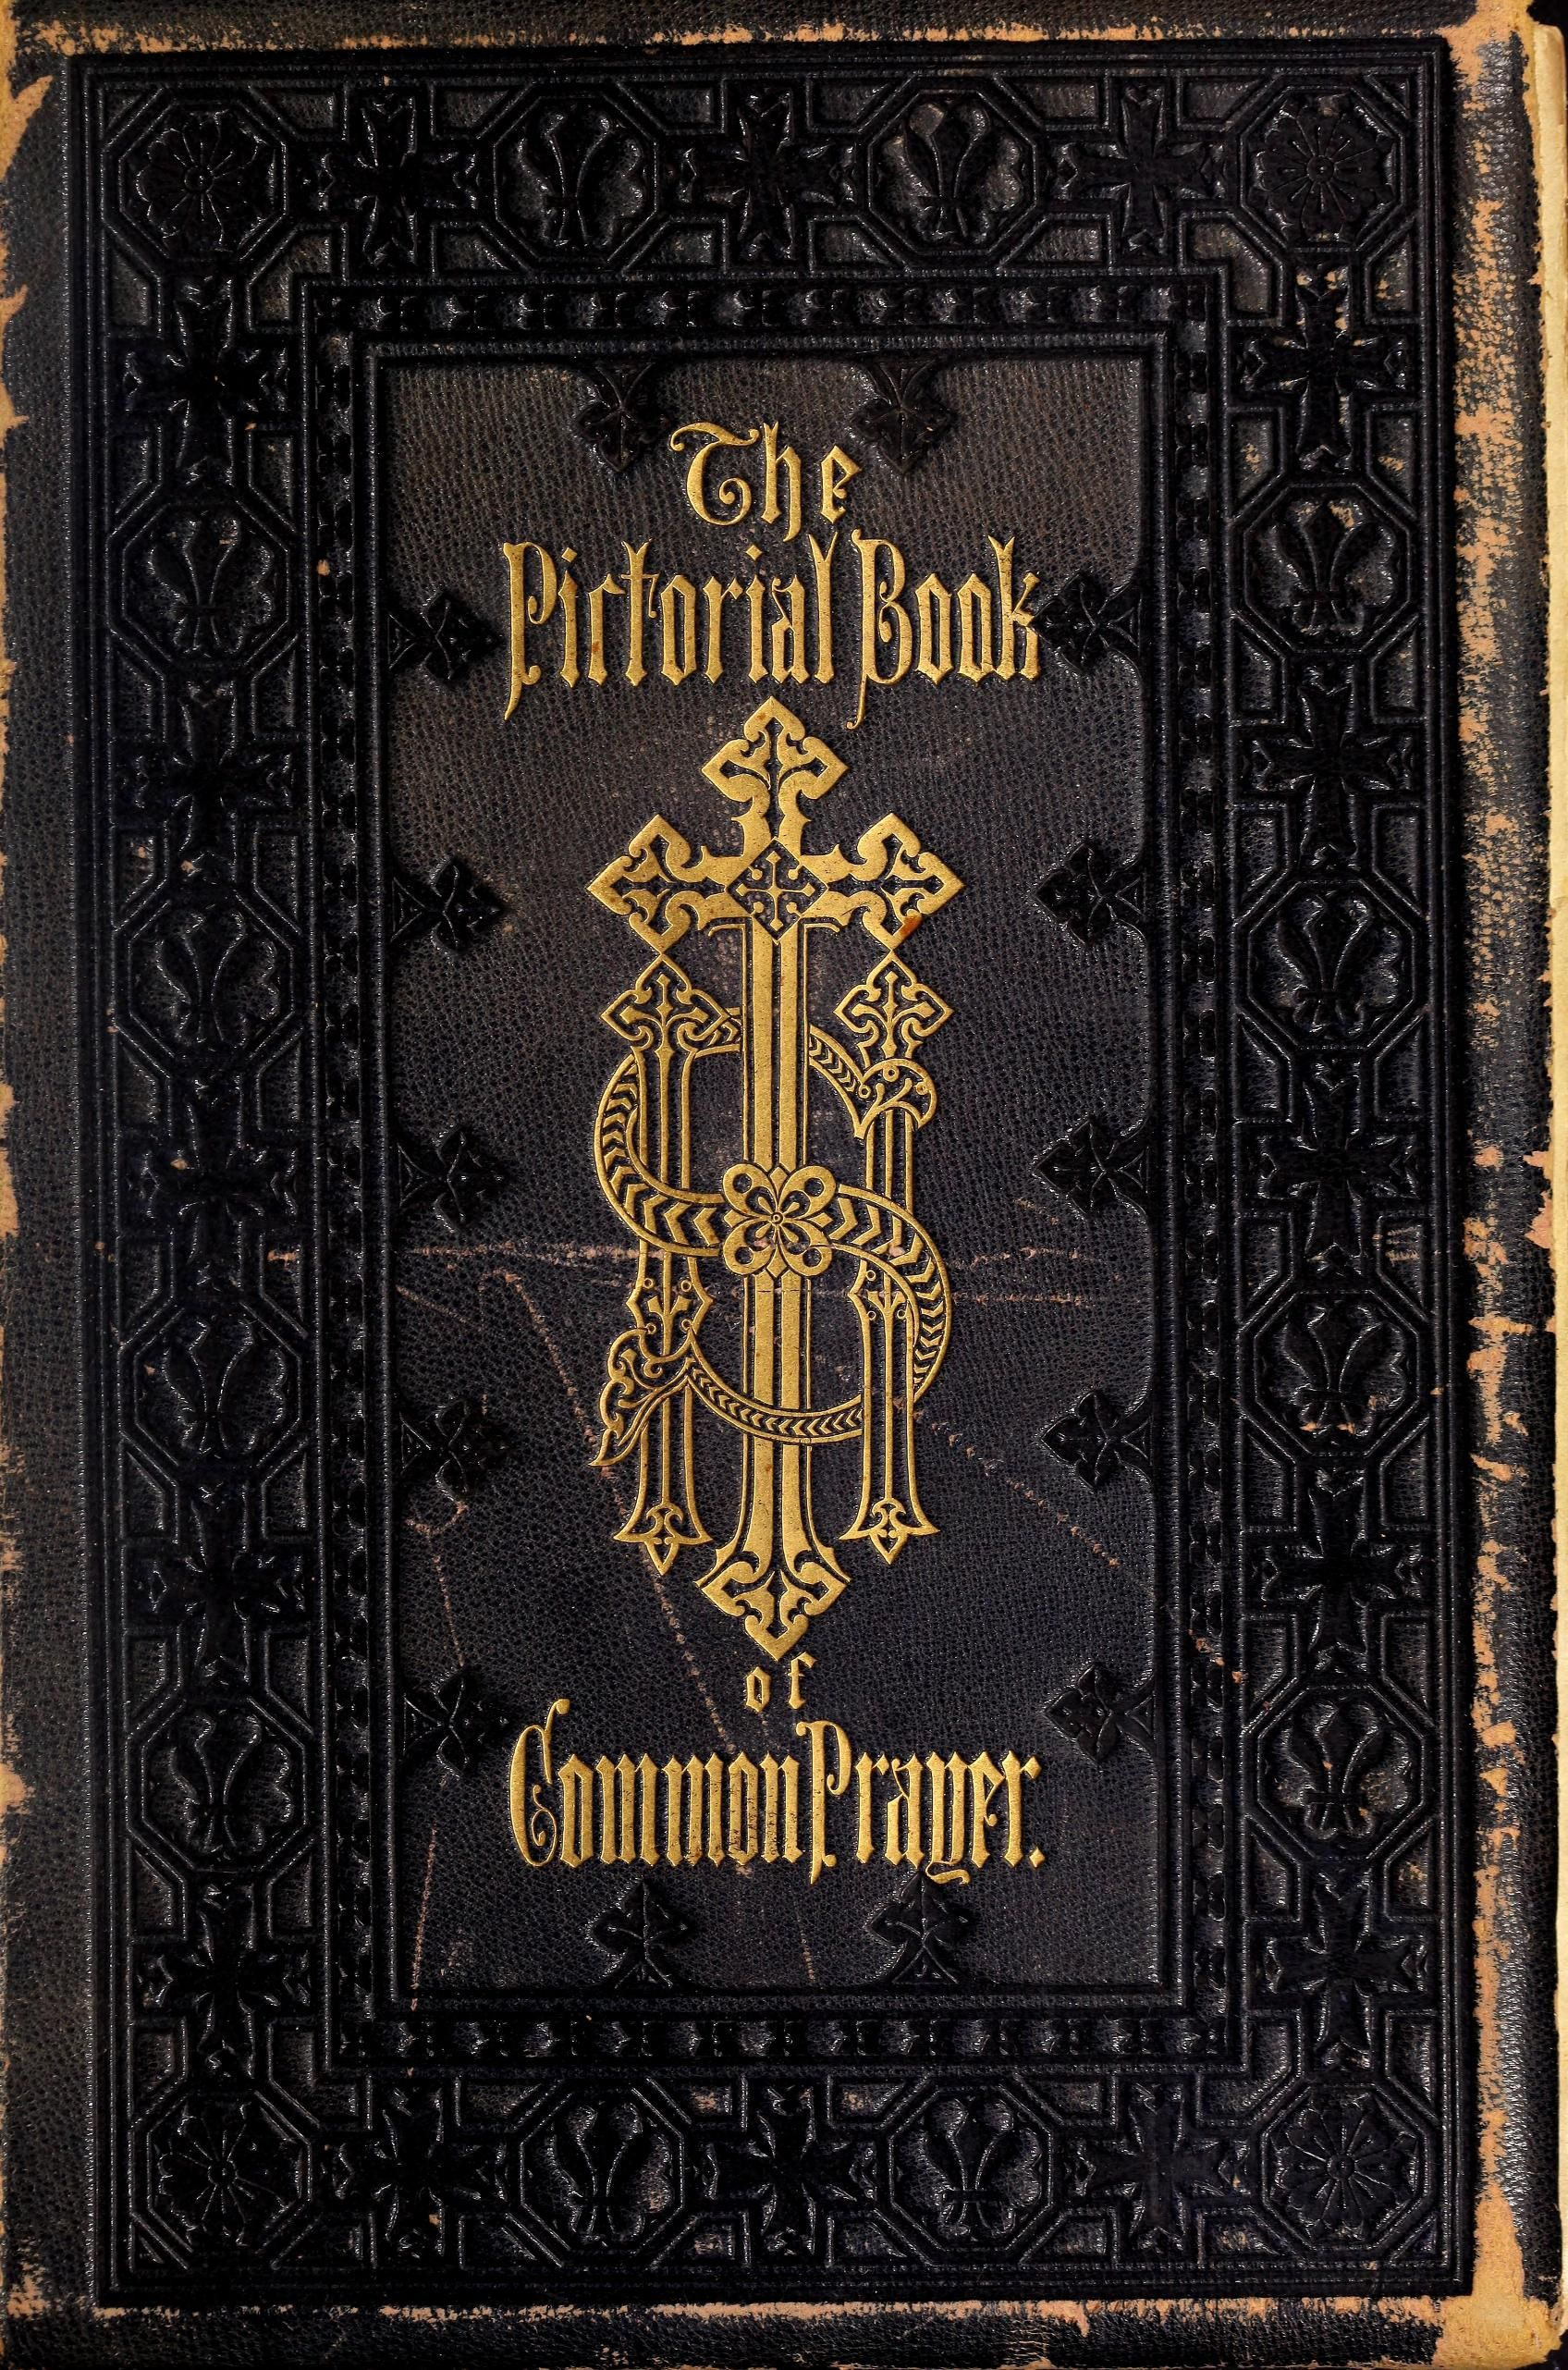 The Pictorial Edition Of The Book Of Common Prayer Book Of